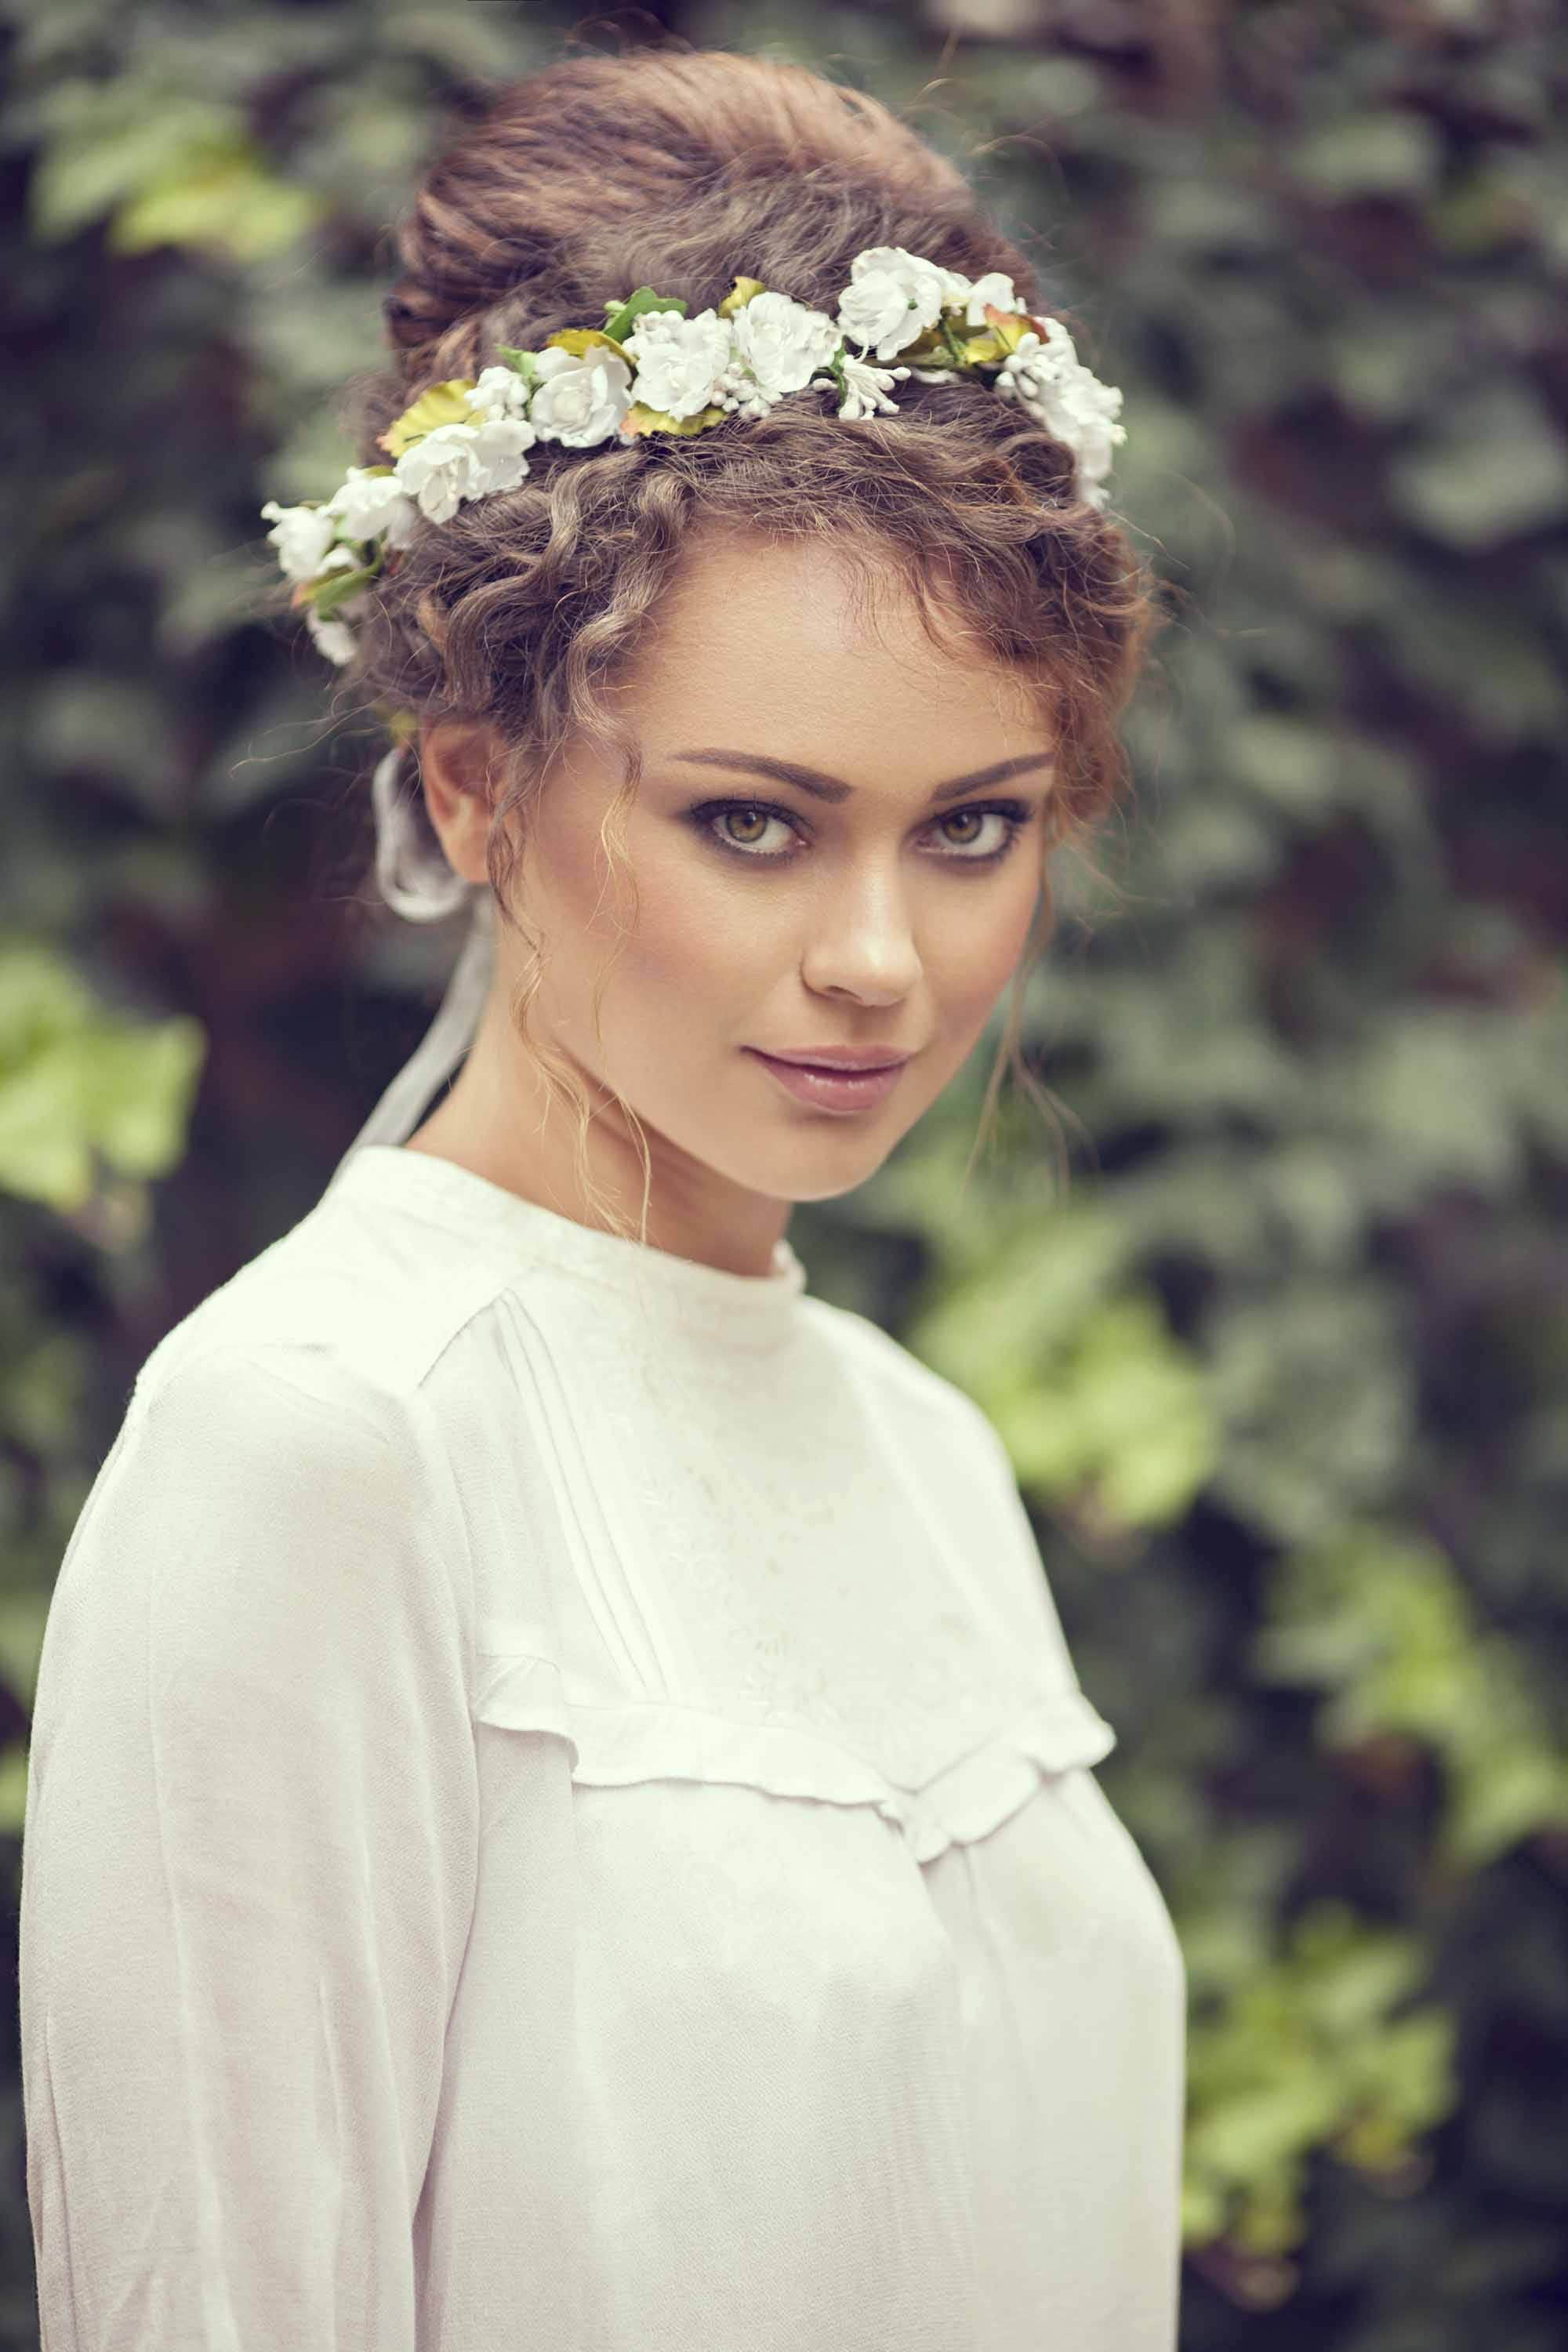 wedding updos for curly hair: 9 gorgeous looks to try